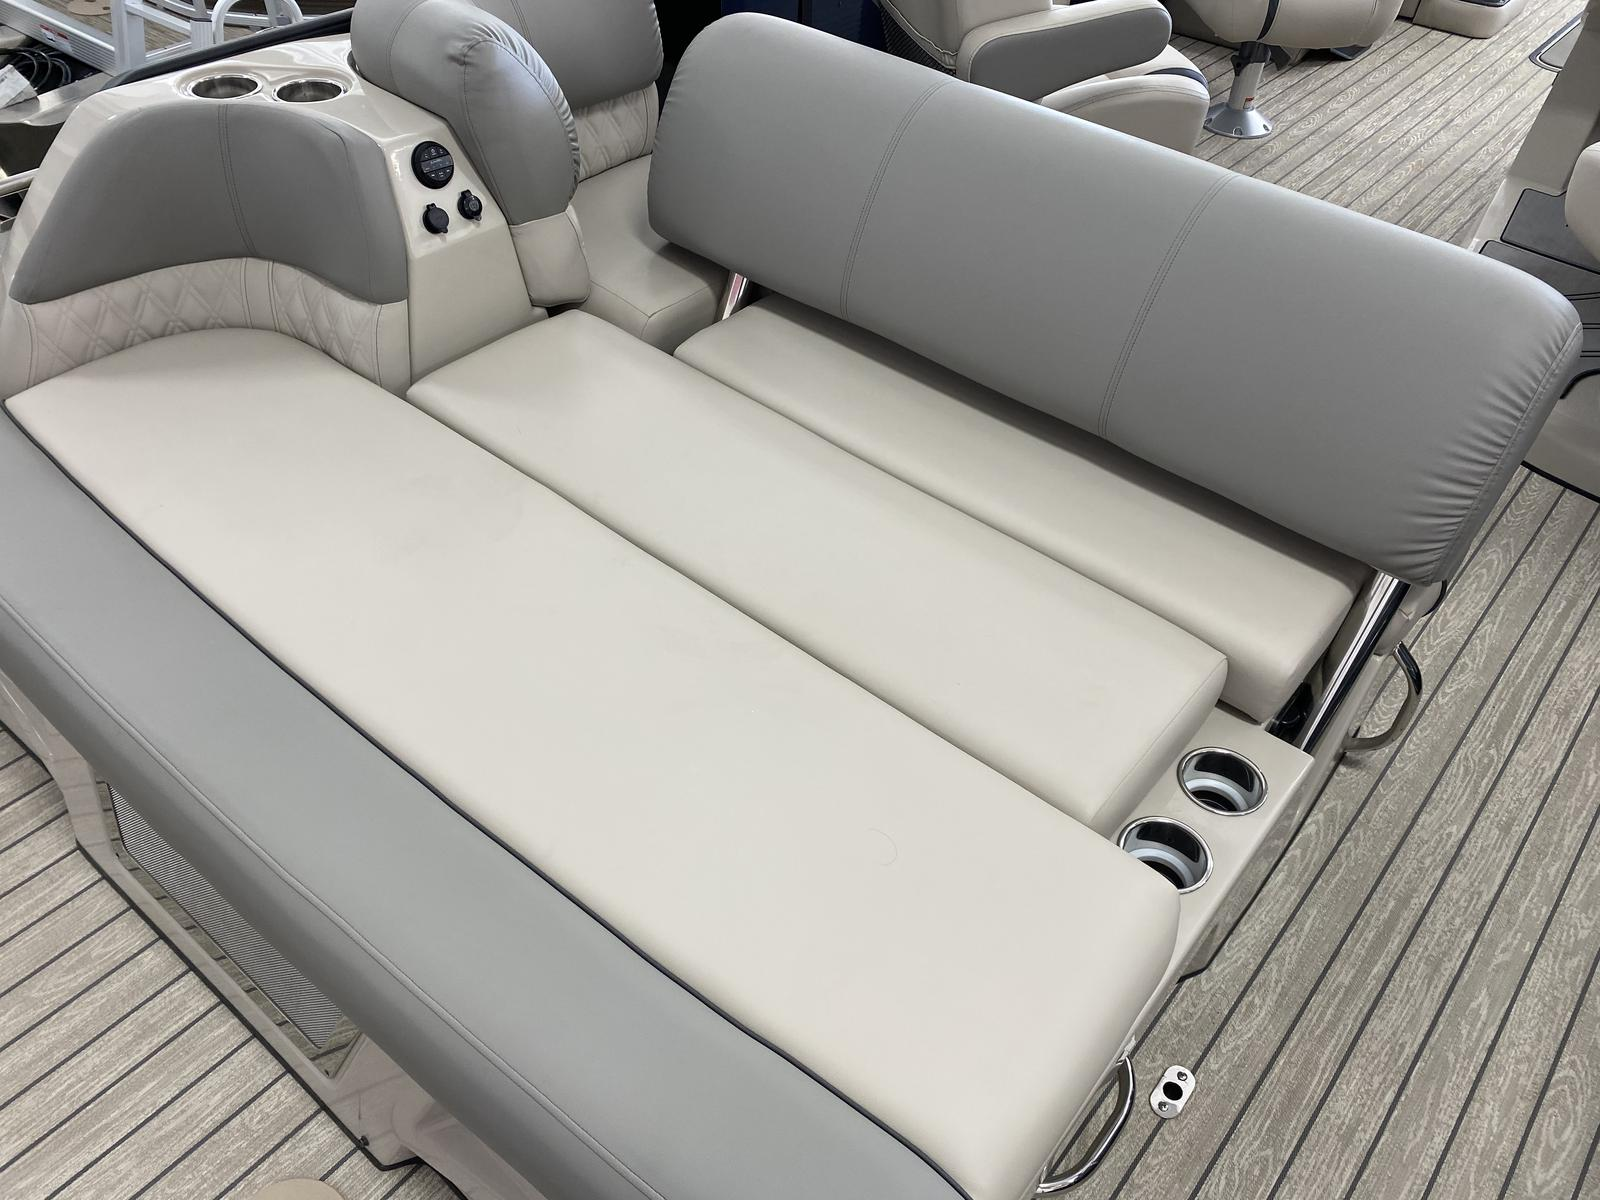 2020 Harris boat for sale, model of the boat is Grand Mariner 270 & Image # 4 of 12